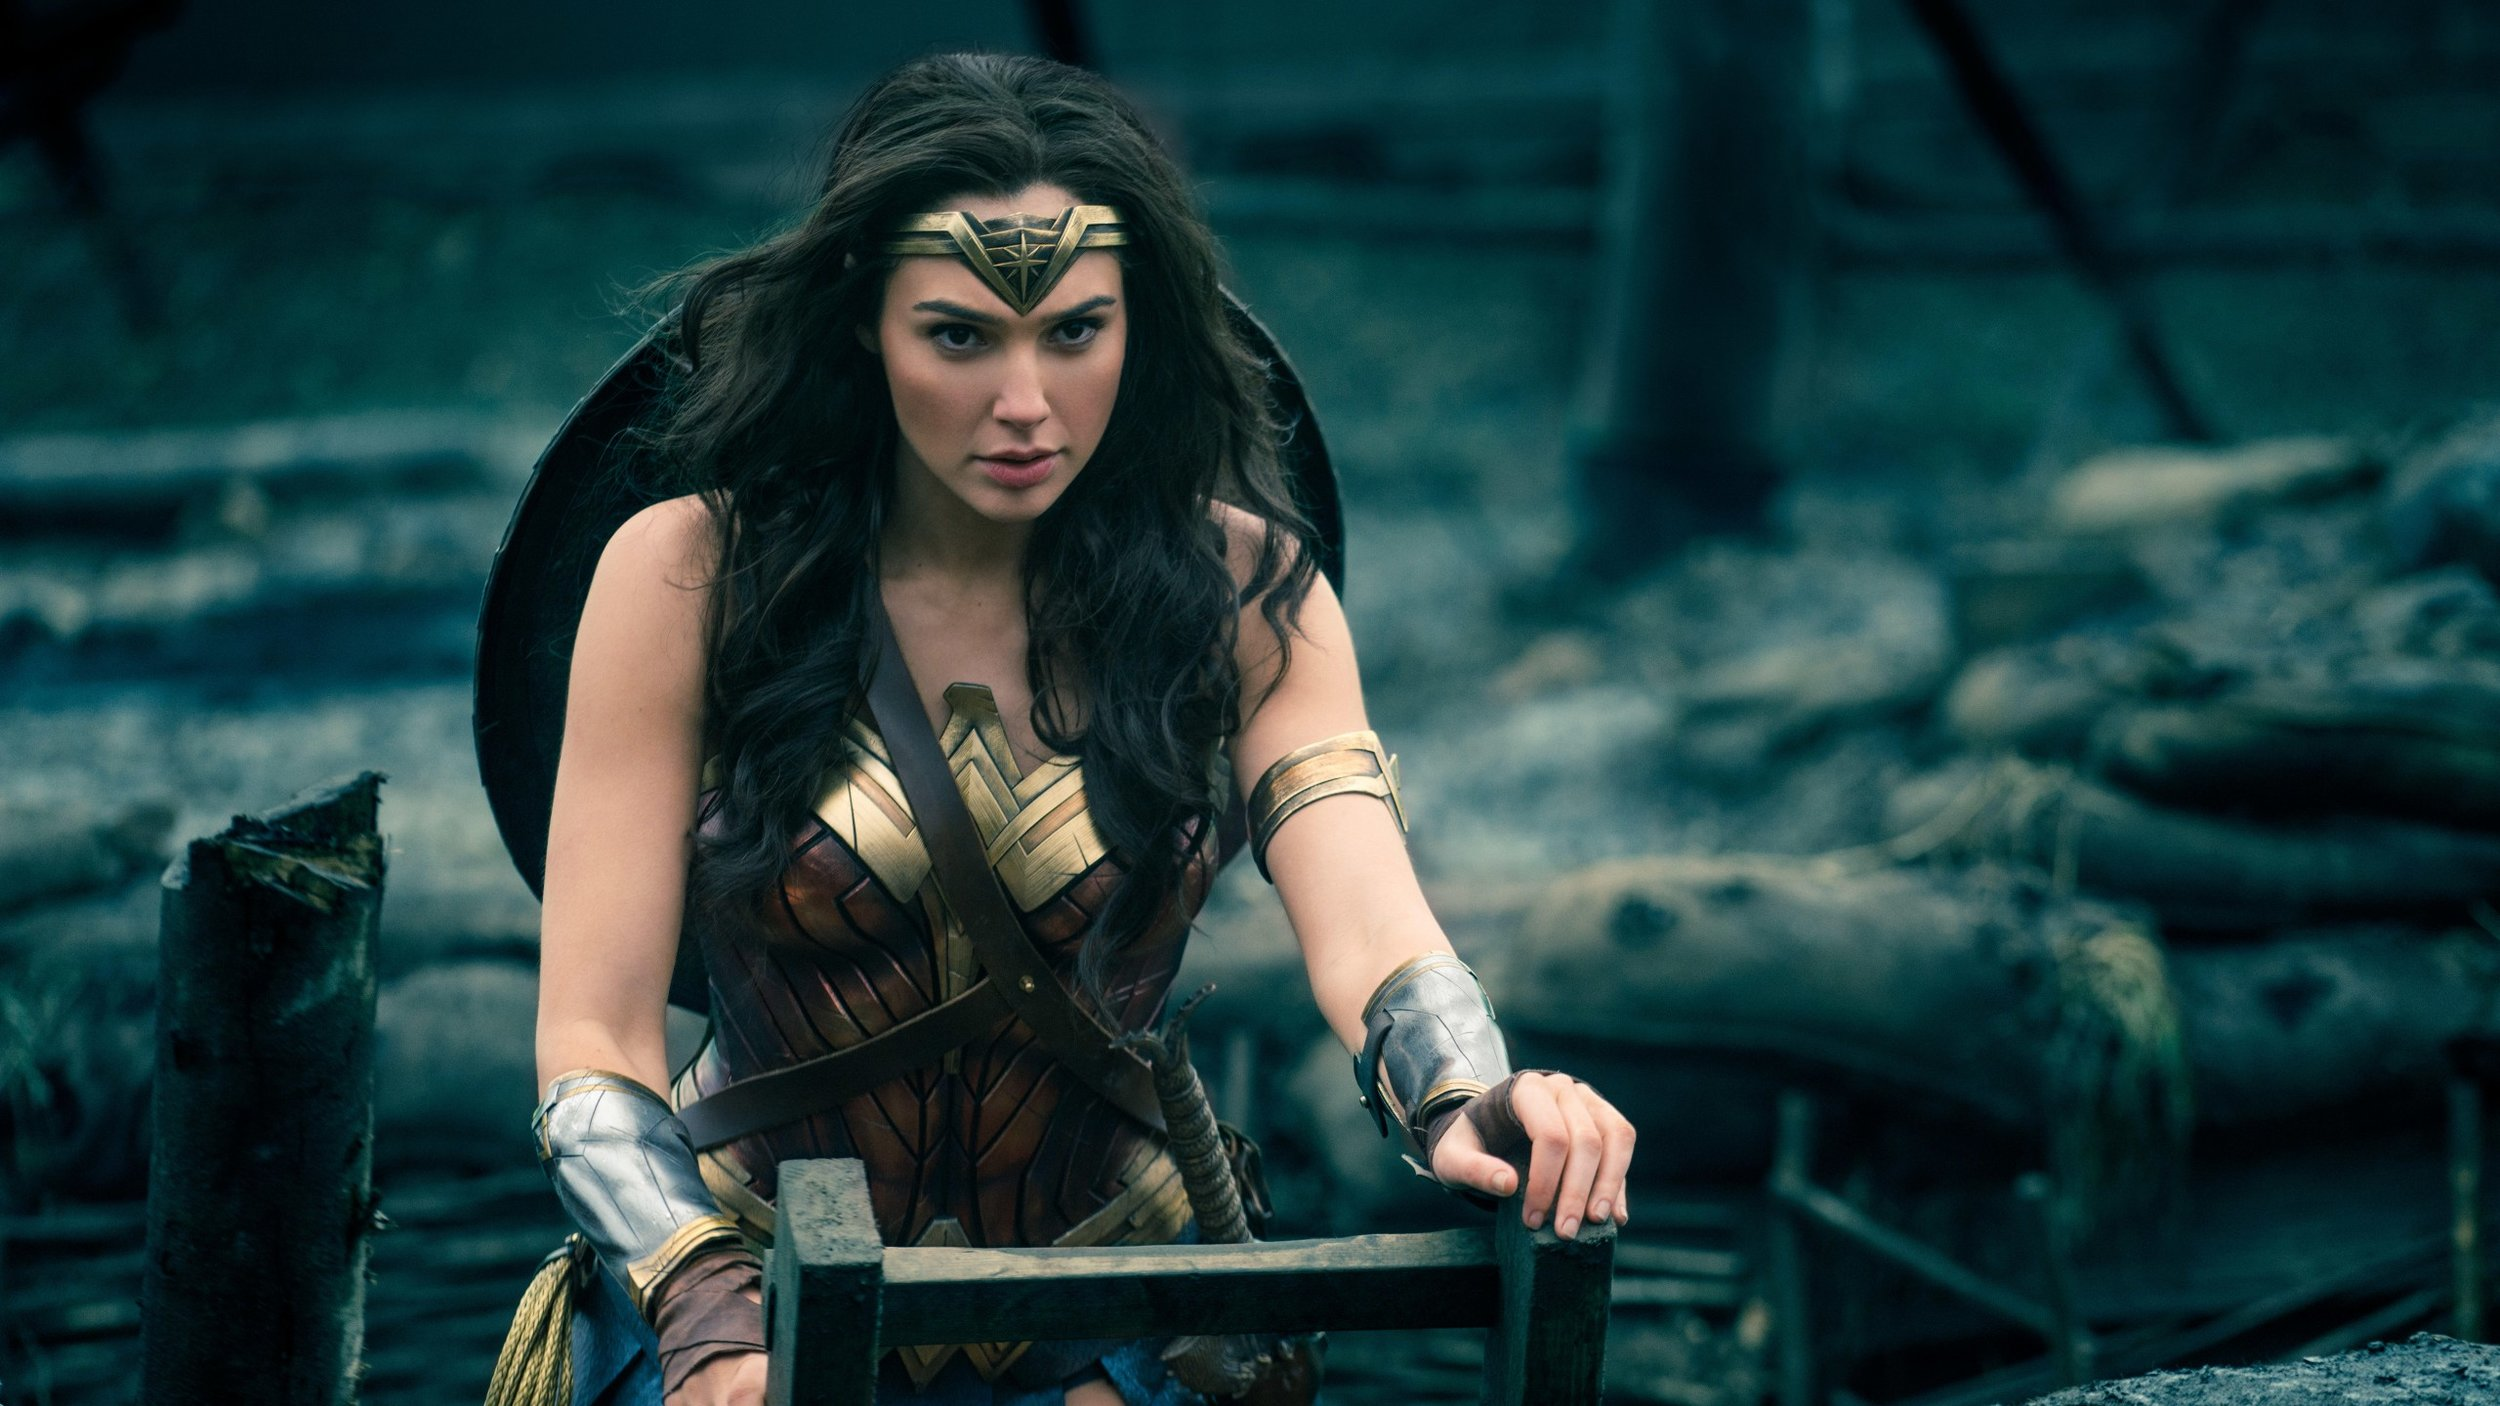 Wonder Woman  is Gadot's ticket to the big league